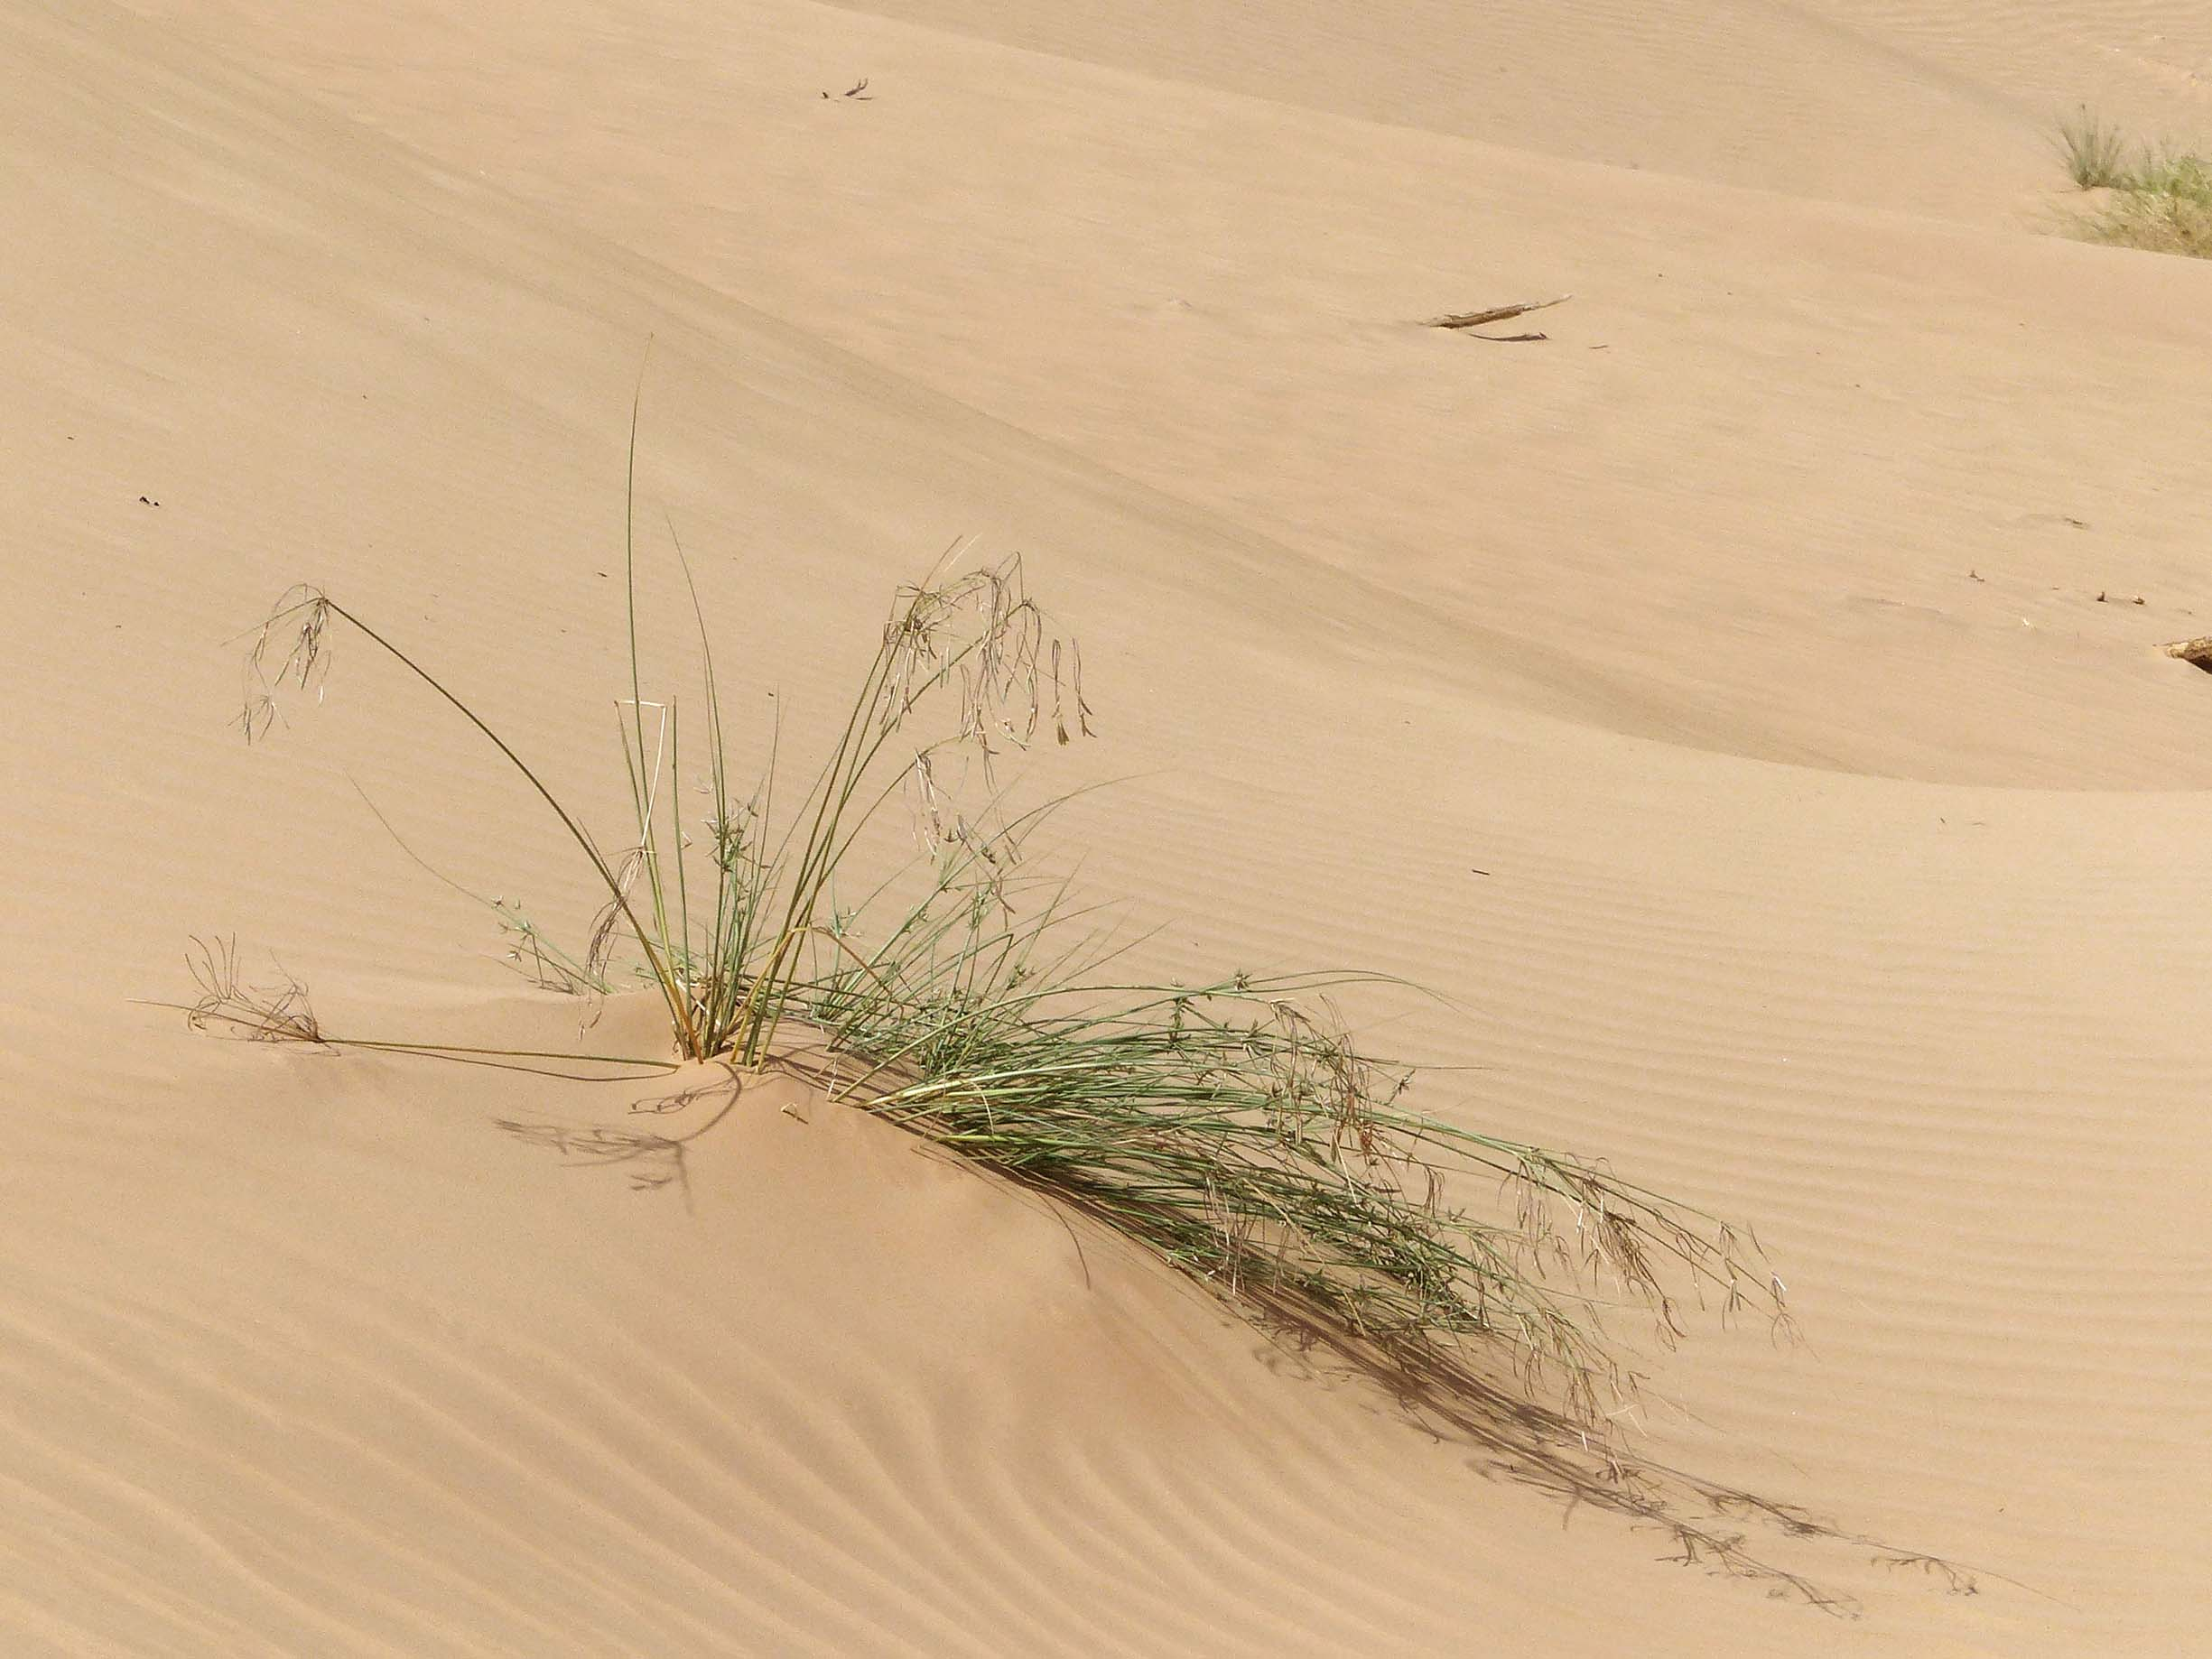 Small clump of grass on a sand dune